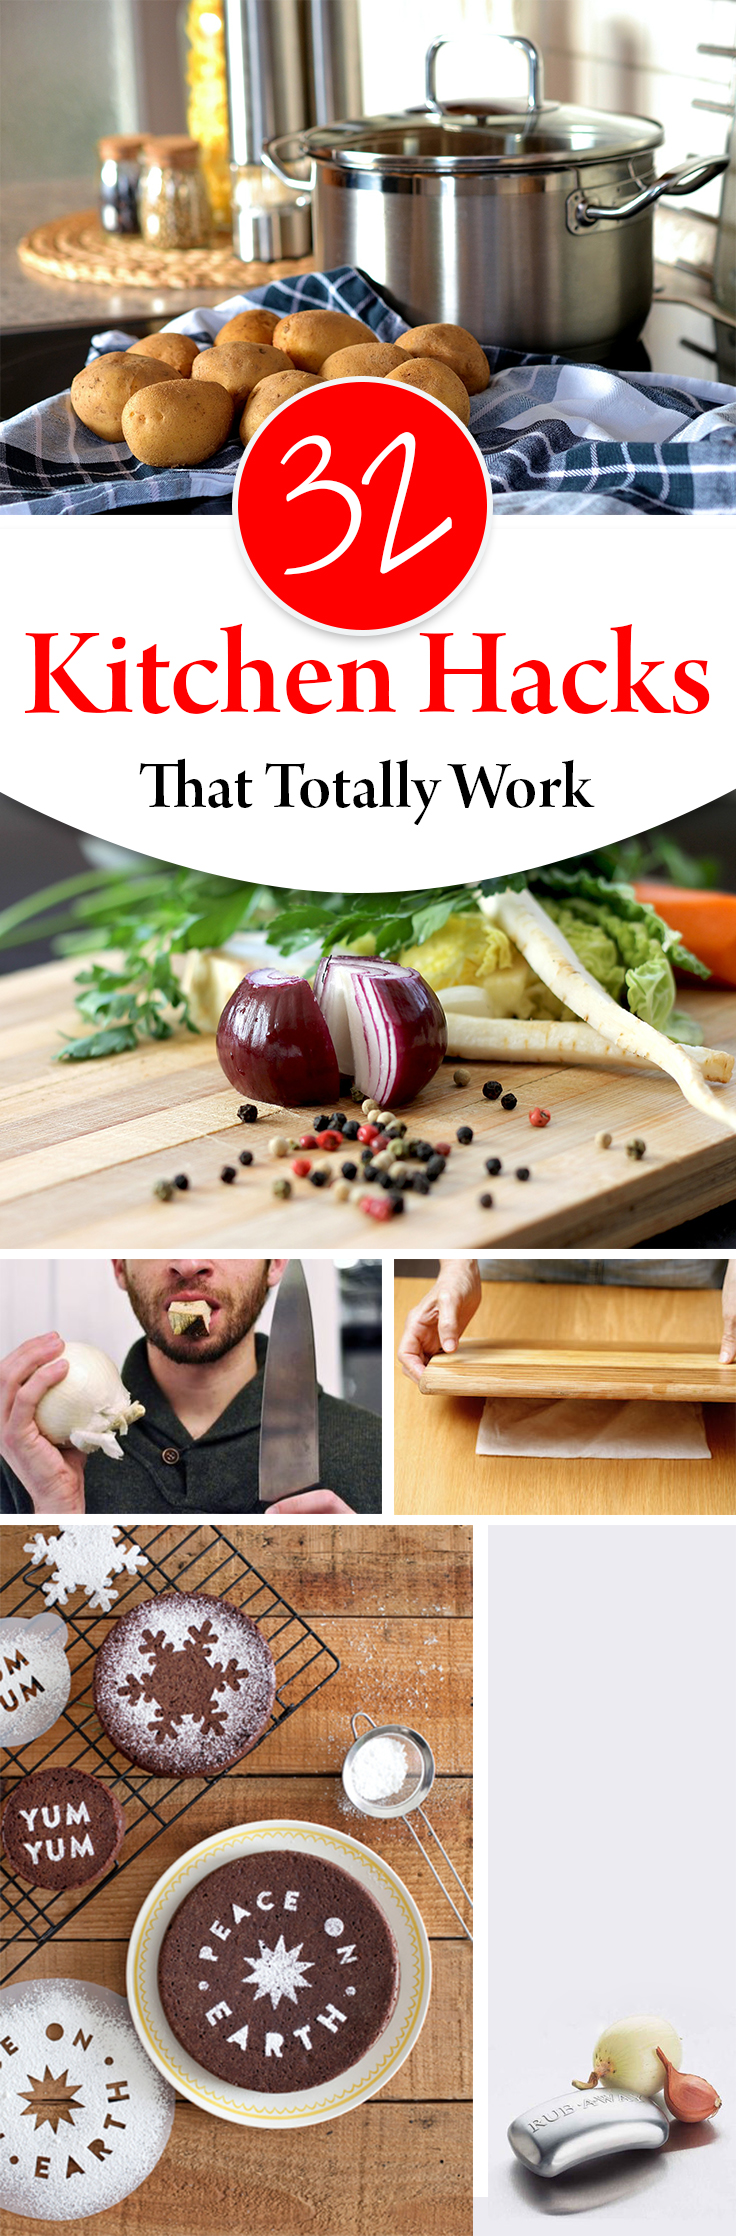 32 Kitchen Hacks That Totally Work